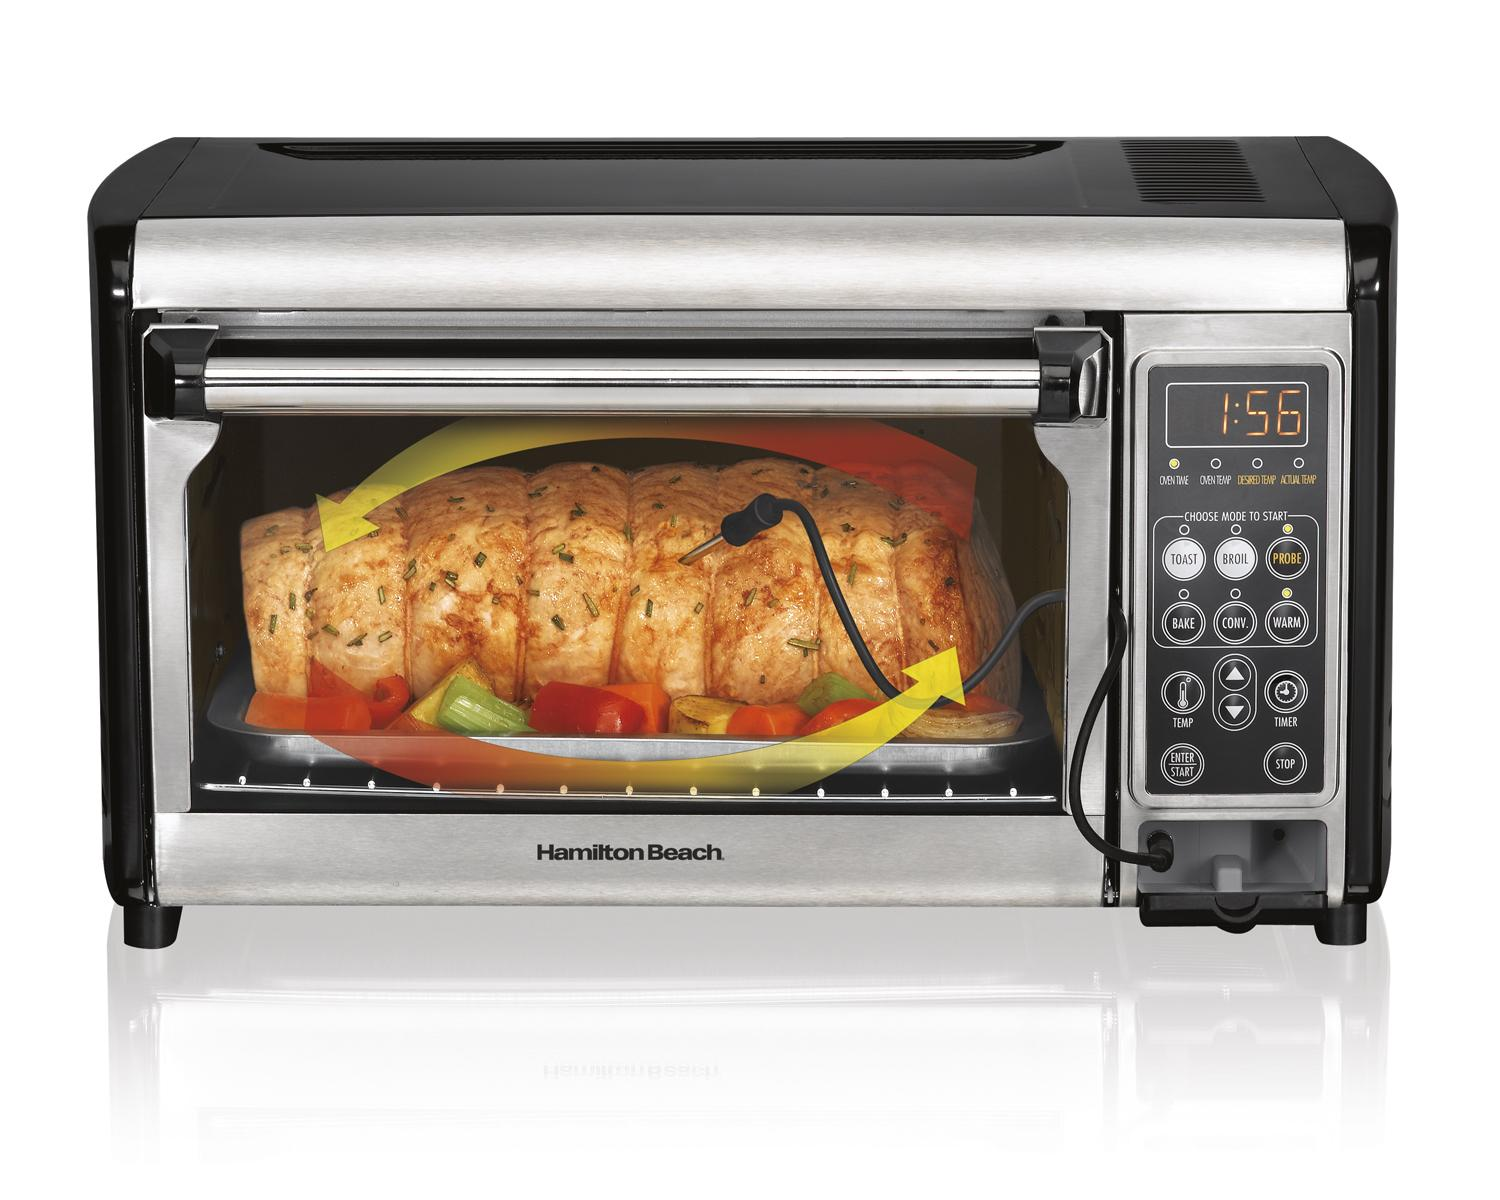 Countertop Convection Toaster Oven Recipes : ... Set & Forget Toaster Oven with Convection Cooking: Kitchen & Dining